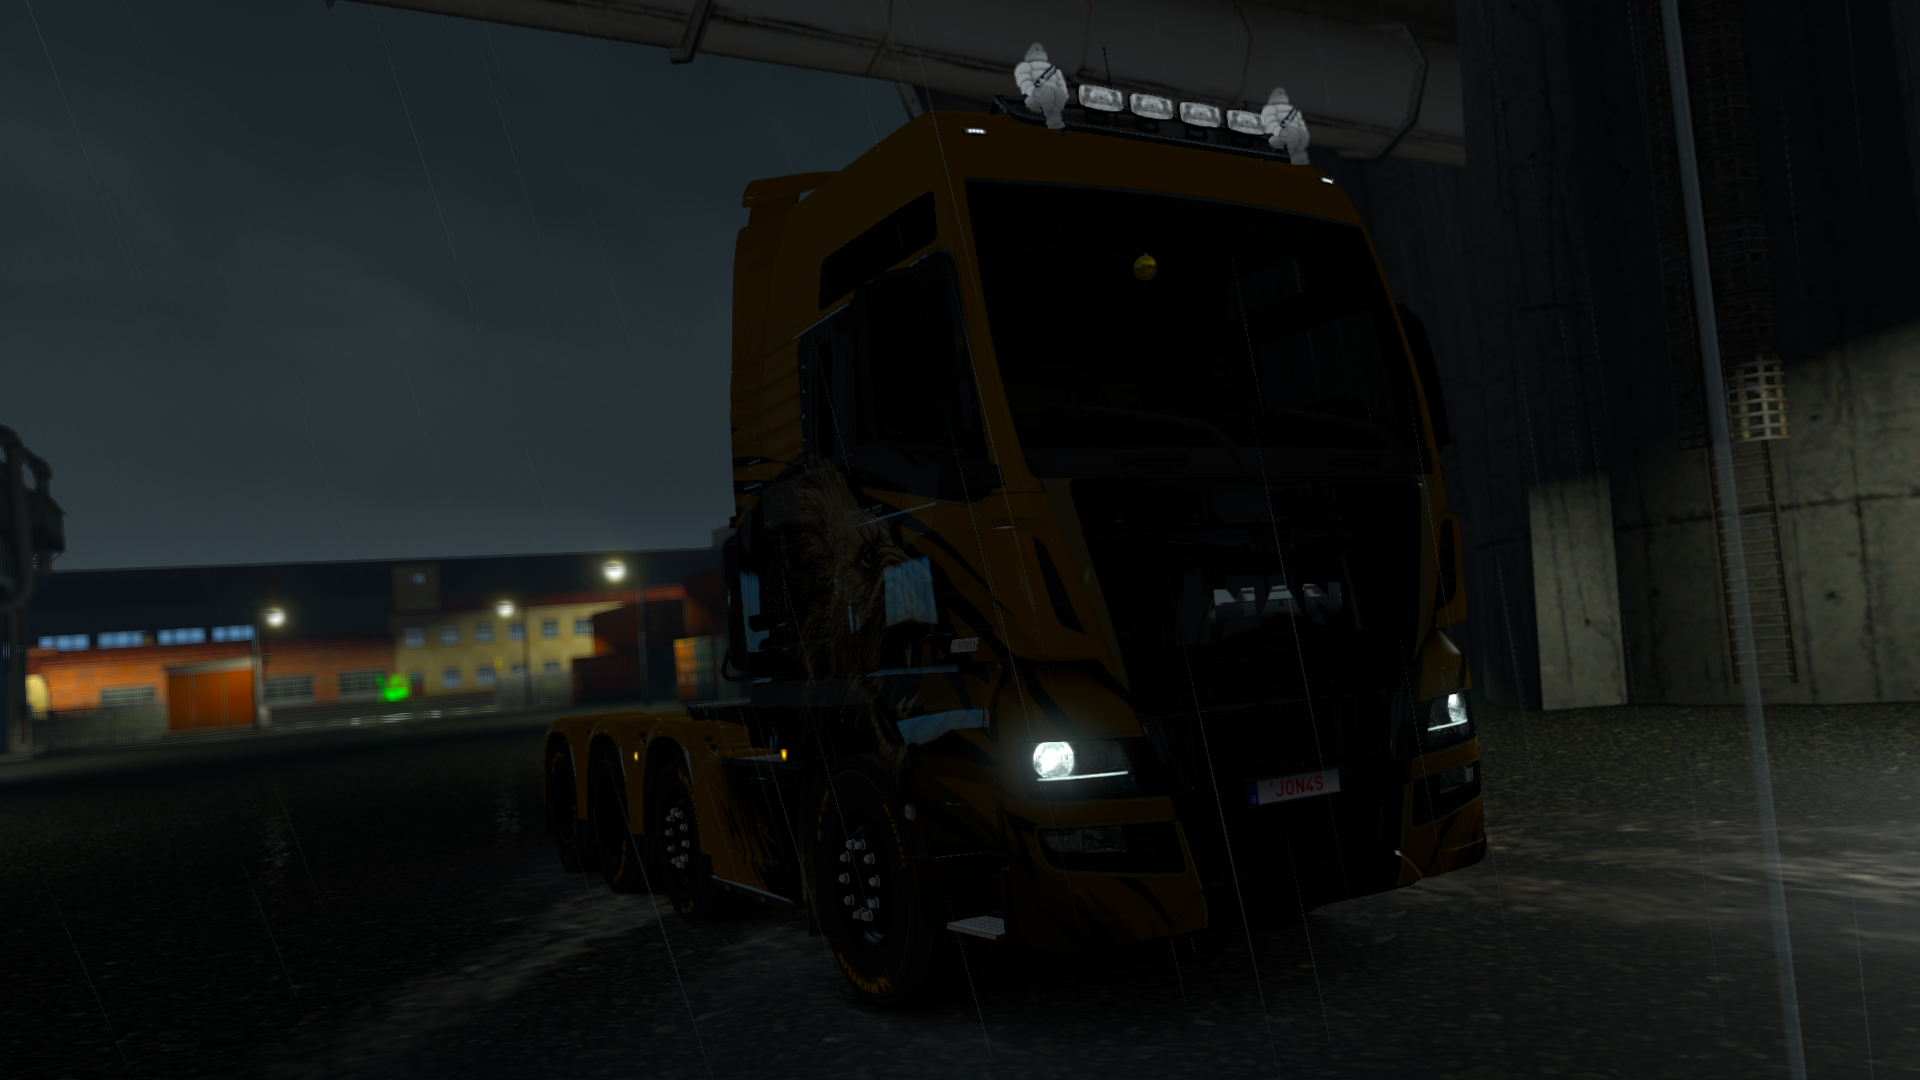 ets2_20190208_180500_00.png